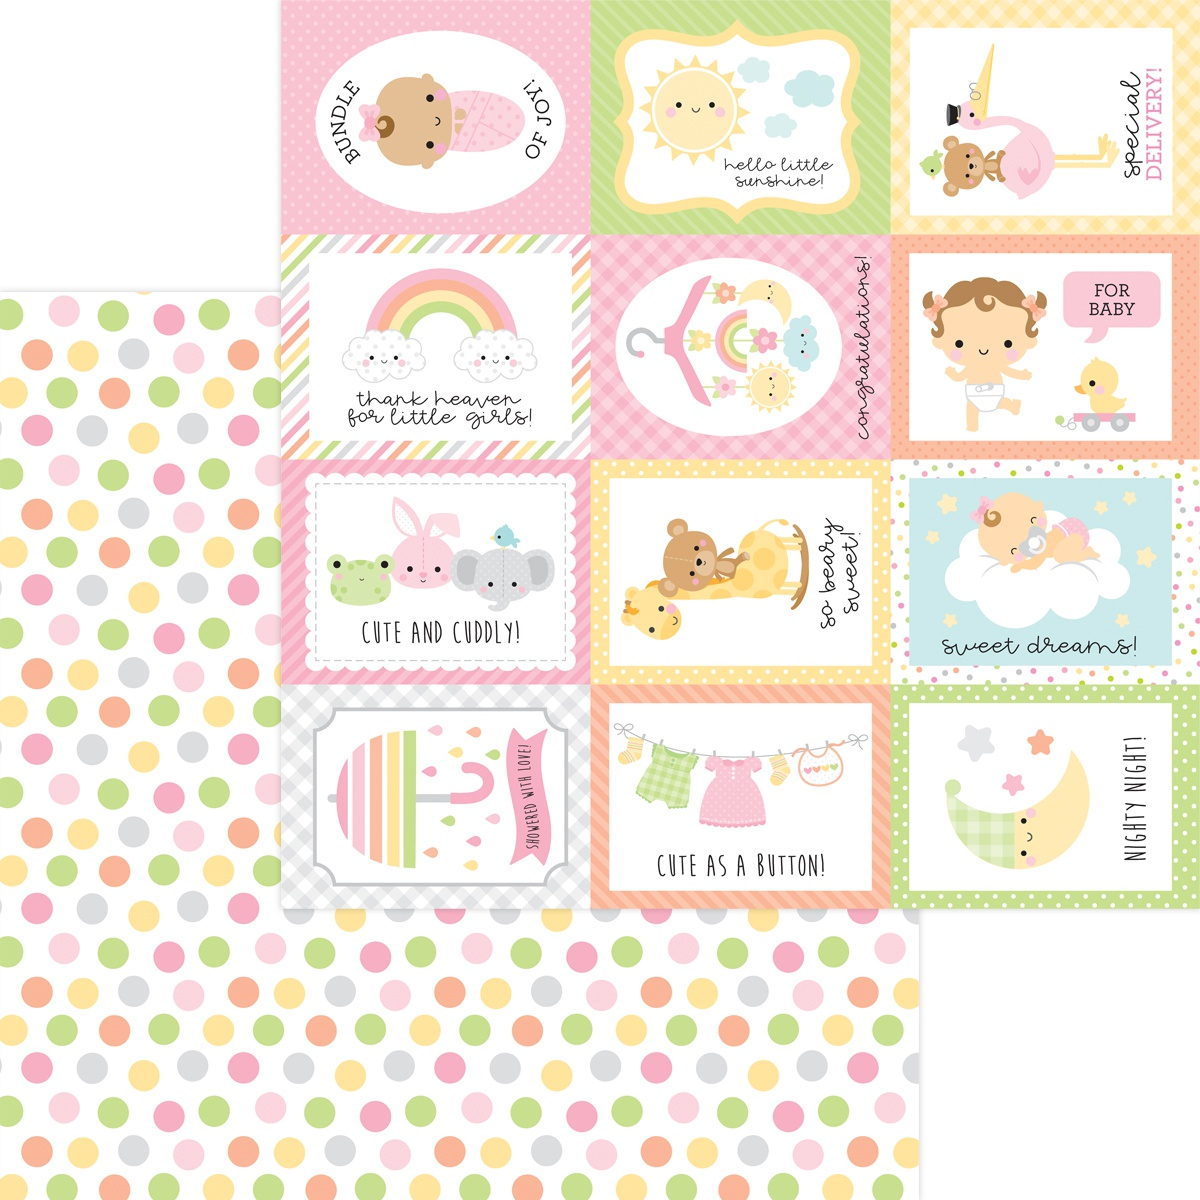 Bundle Of Joy Double-Sided Cardstock 12X12-Cute As A Button